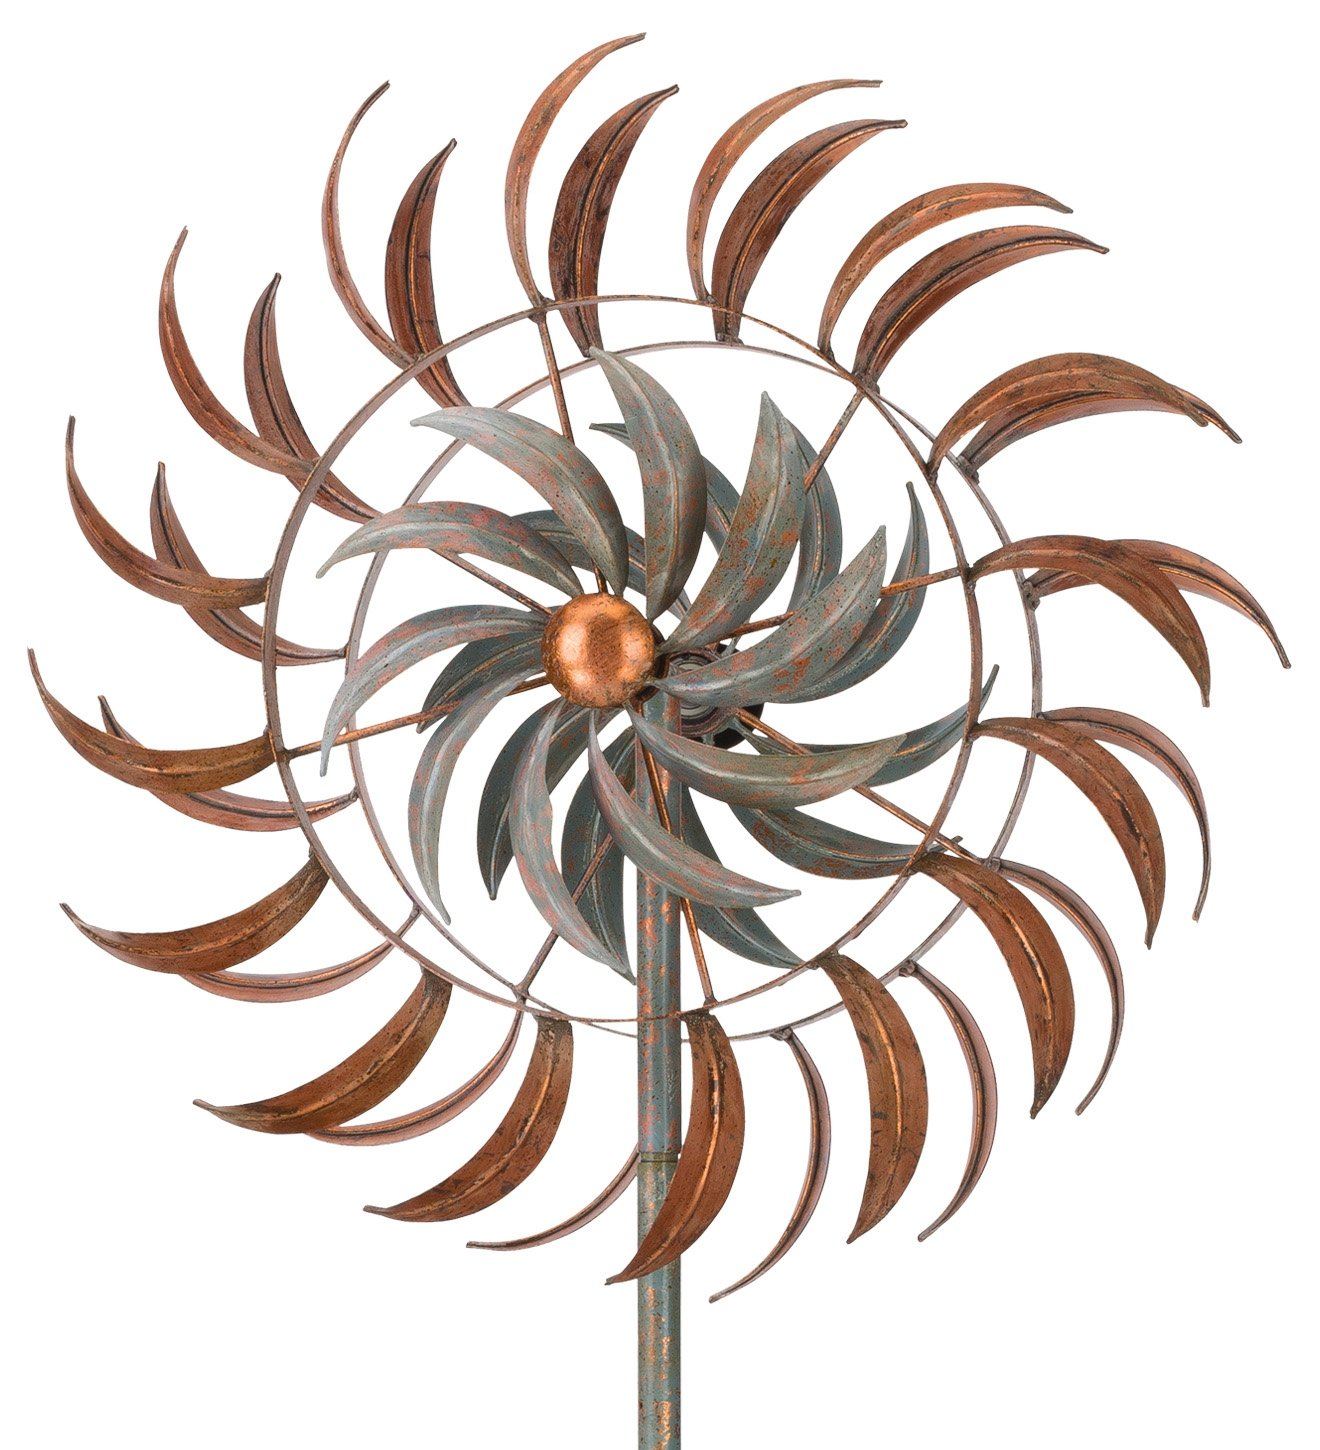 Regal Art & Gift Rotating Kinetic 24 inches x 13.5 inches x 75 inches Metal Stake - Copper Petals Garden Stakes